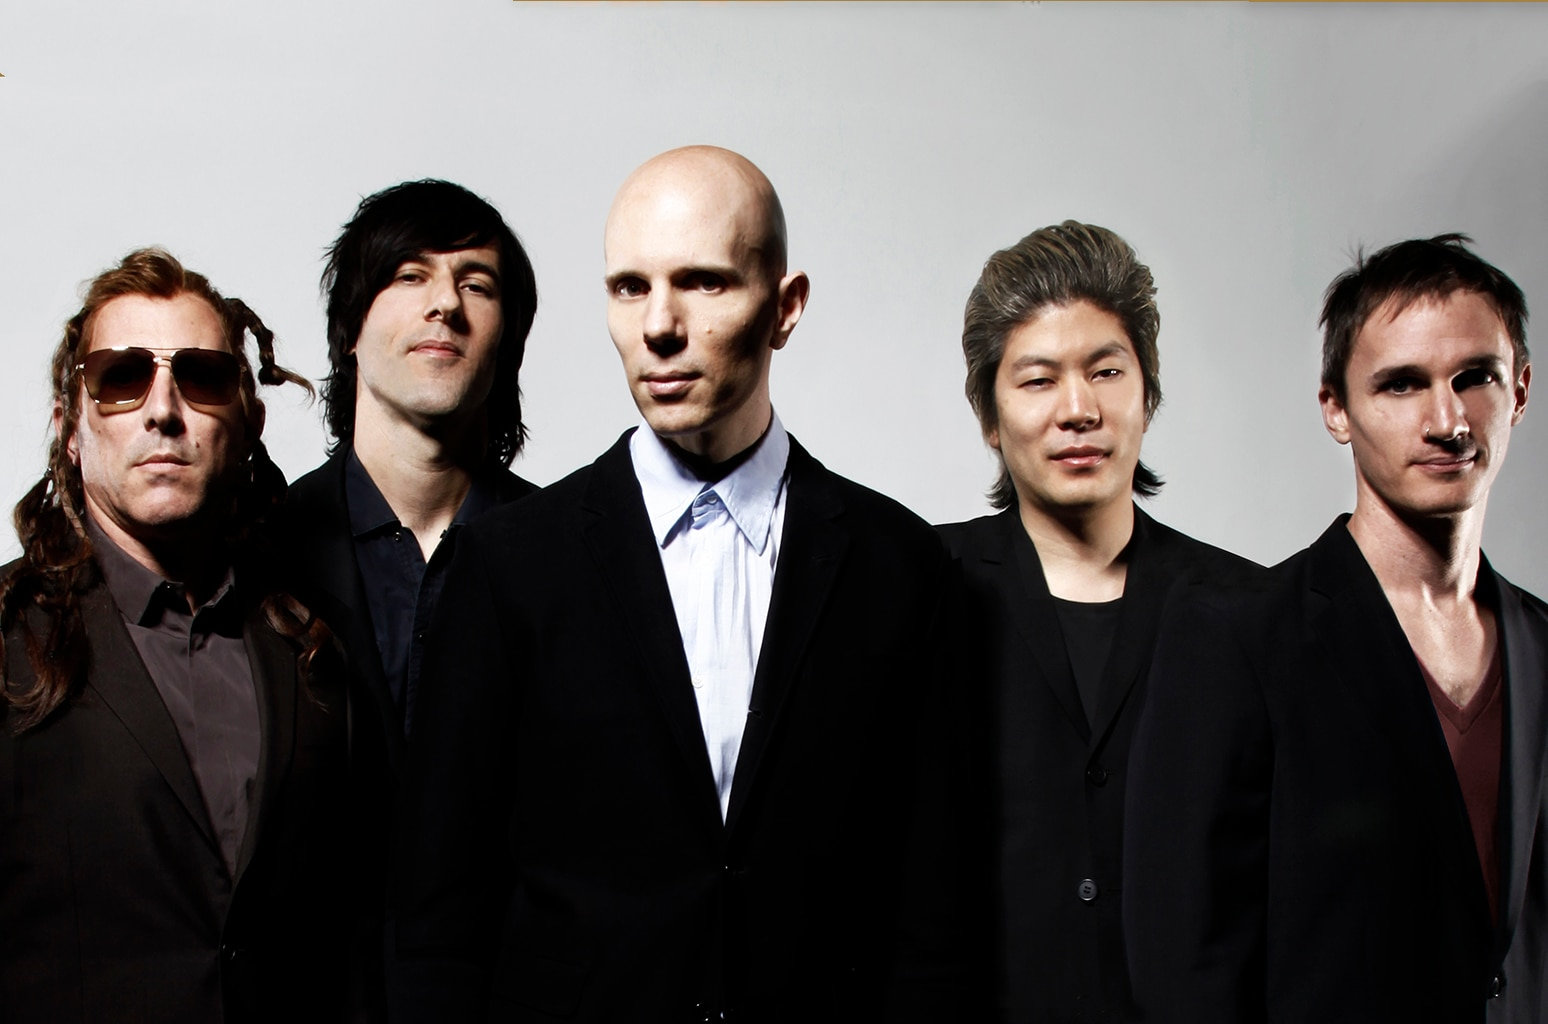 aperfectcircleband - A Perfect Circle Tease Something Called The Doomed